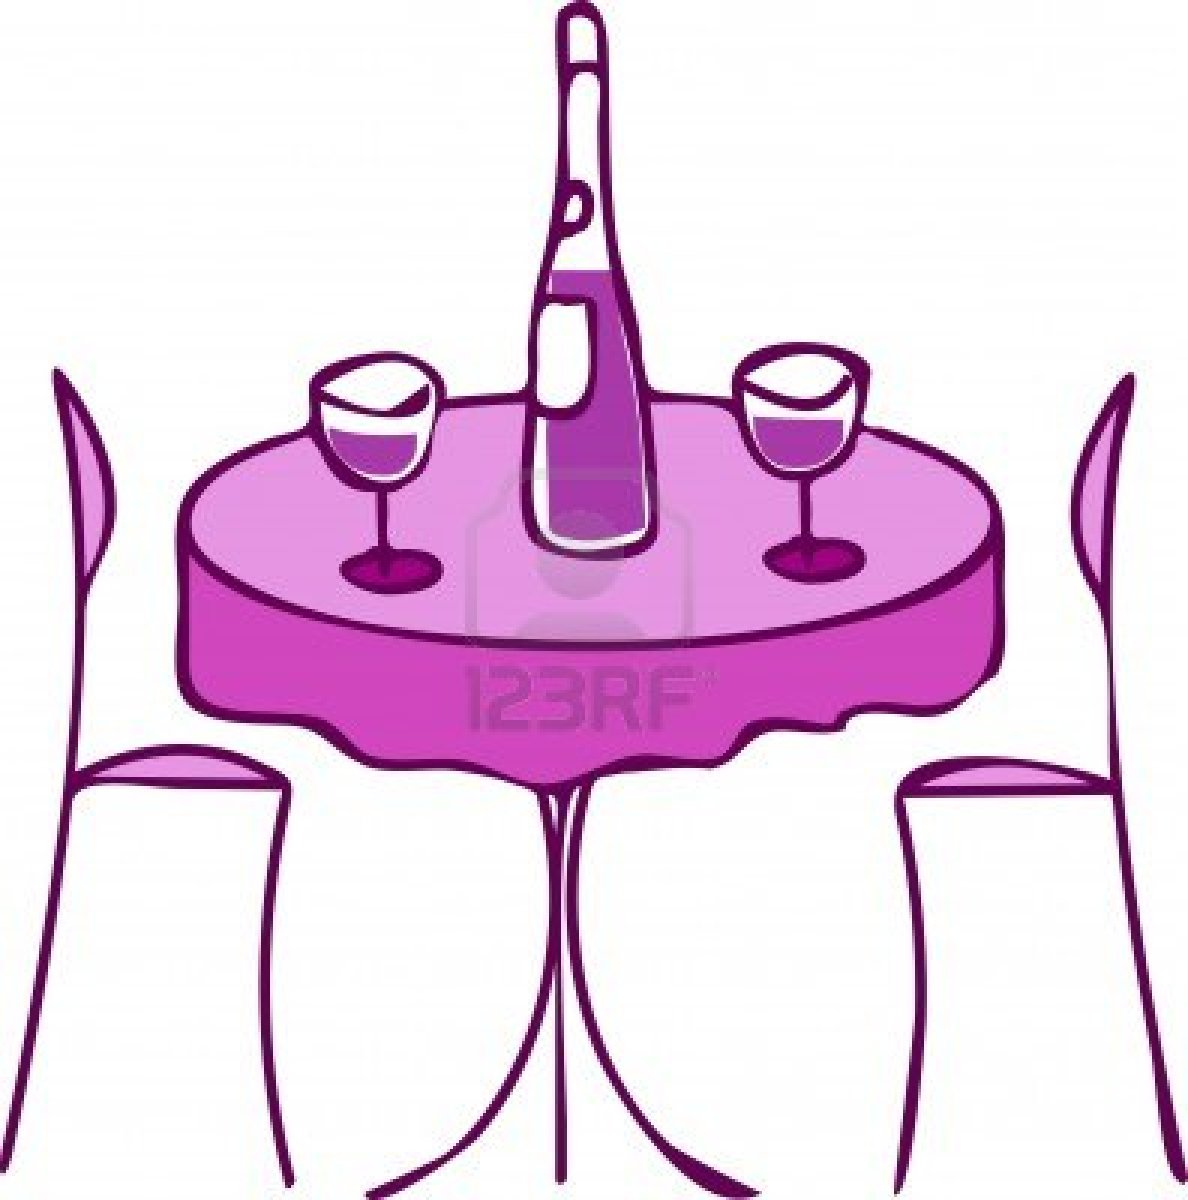 Restaurant tables and chairs clipart - Round 20kitchen 20table 20clip 20art